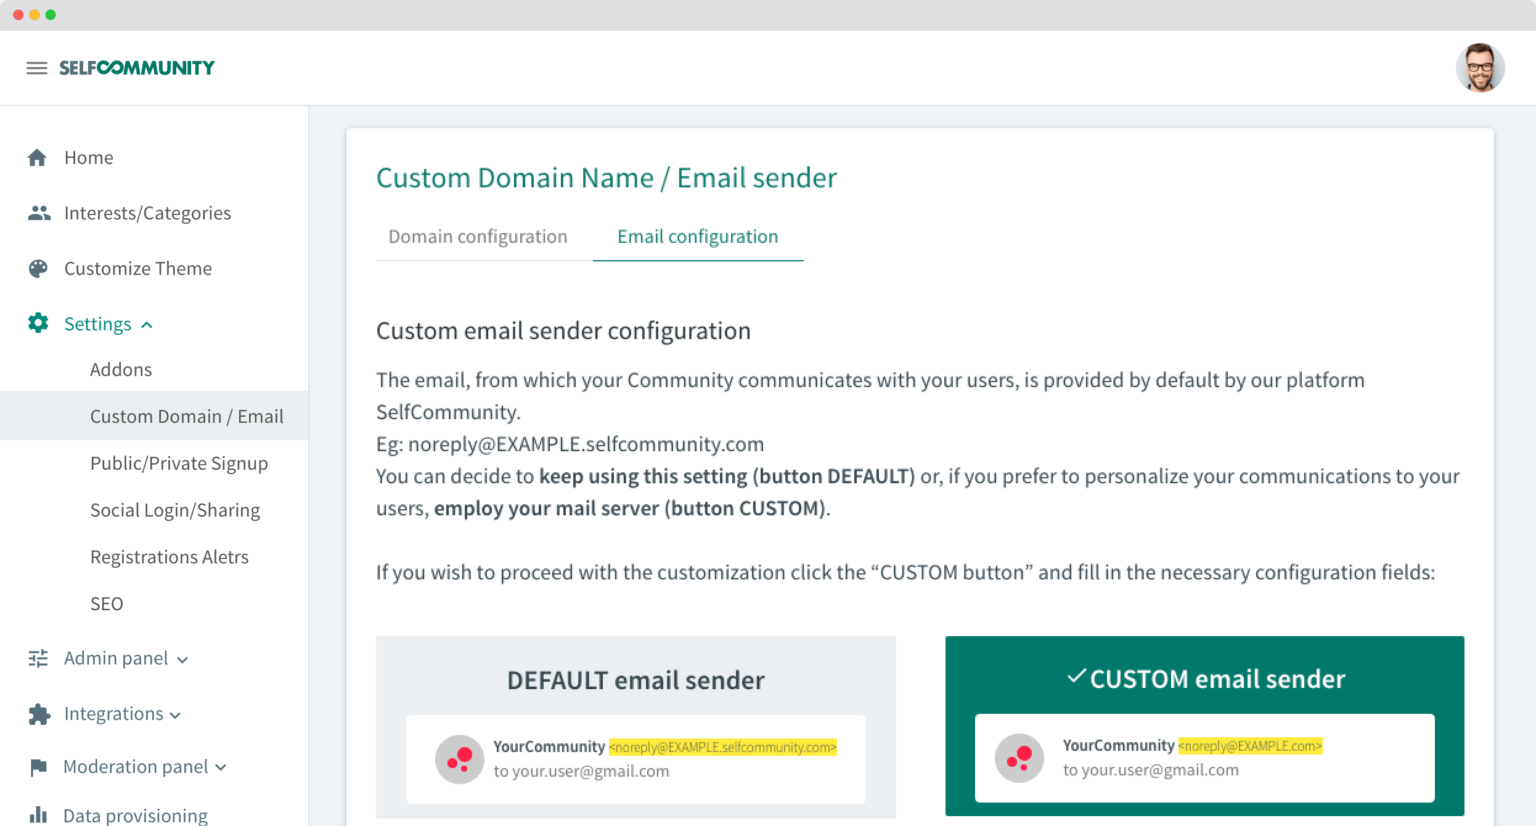 SelfCommunity customizable domain and email sender